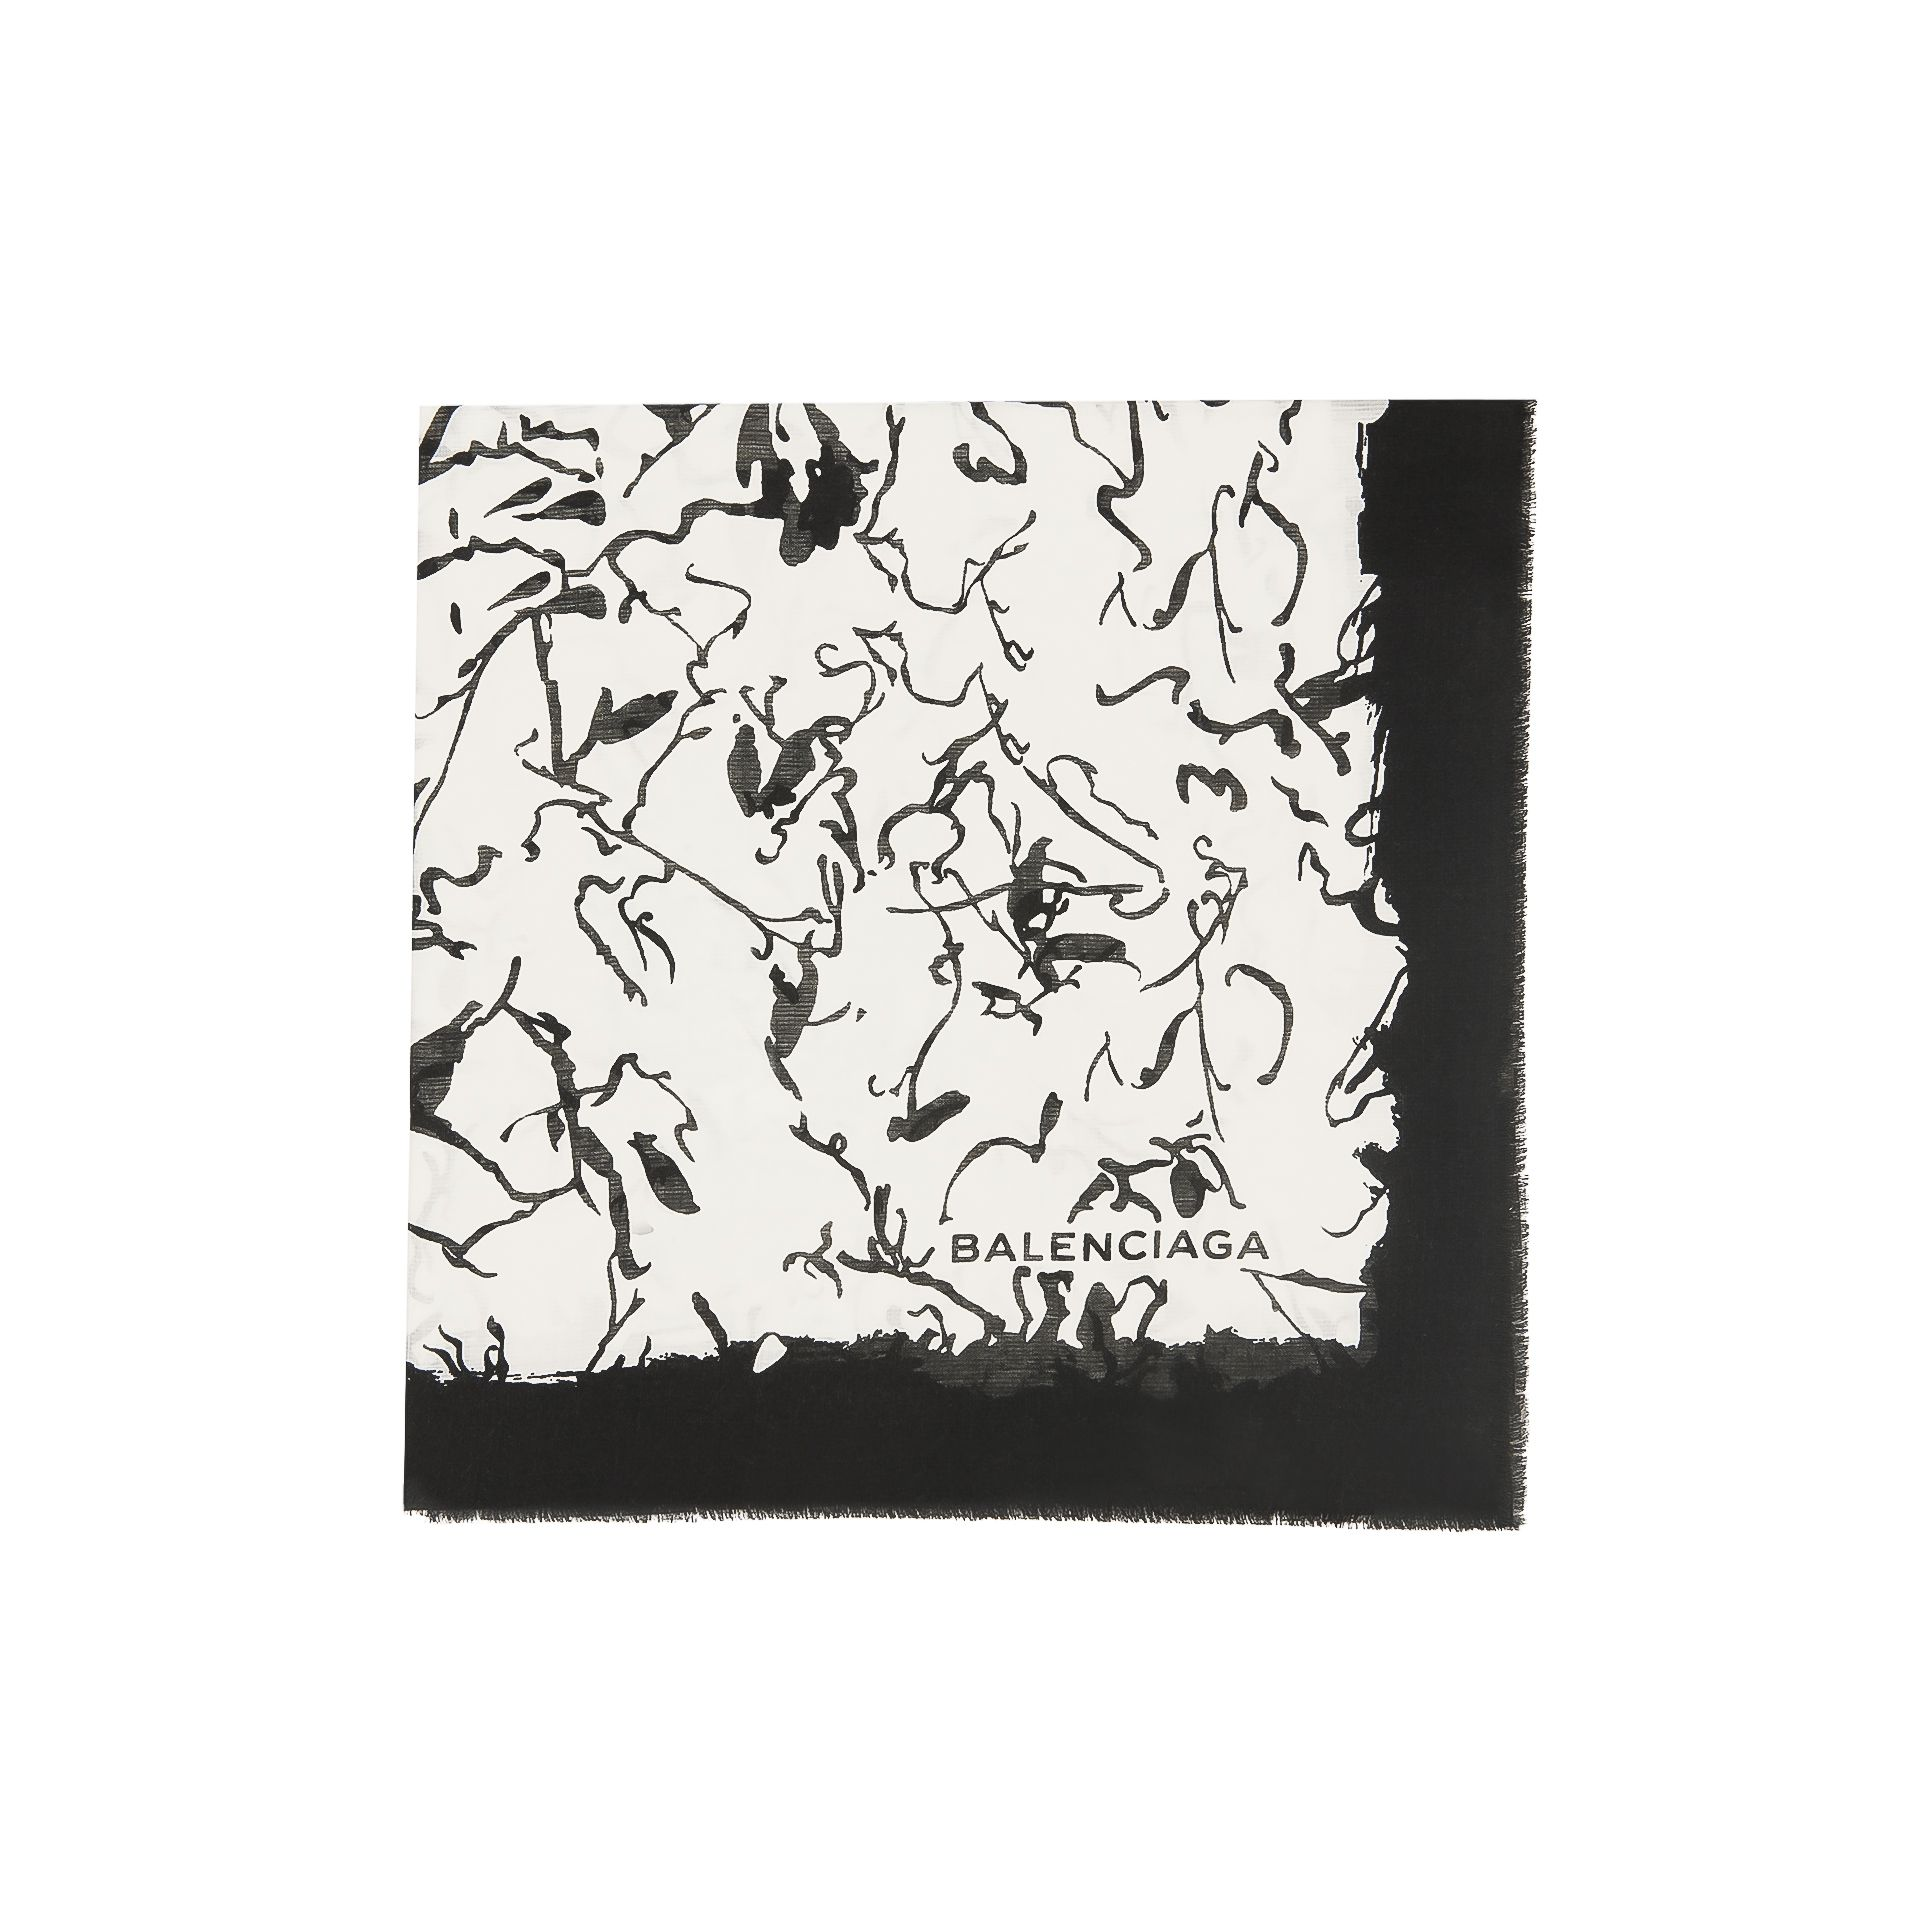 BALENCIAGA Balenciaga 'Ink Drawing' Scarf  Scarves & foulards D f